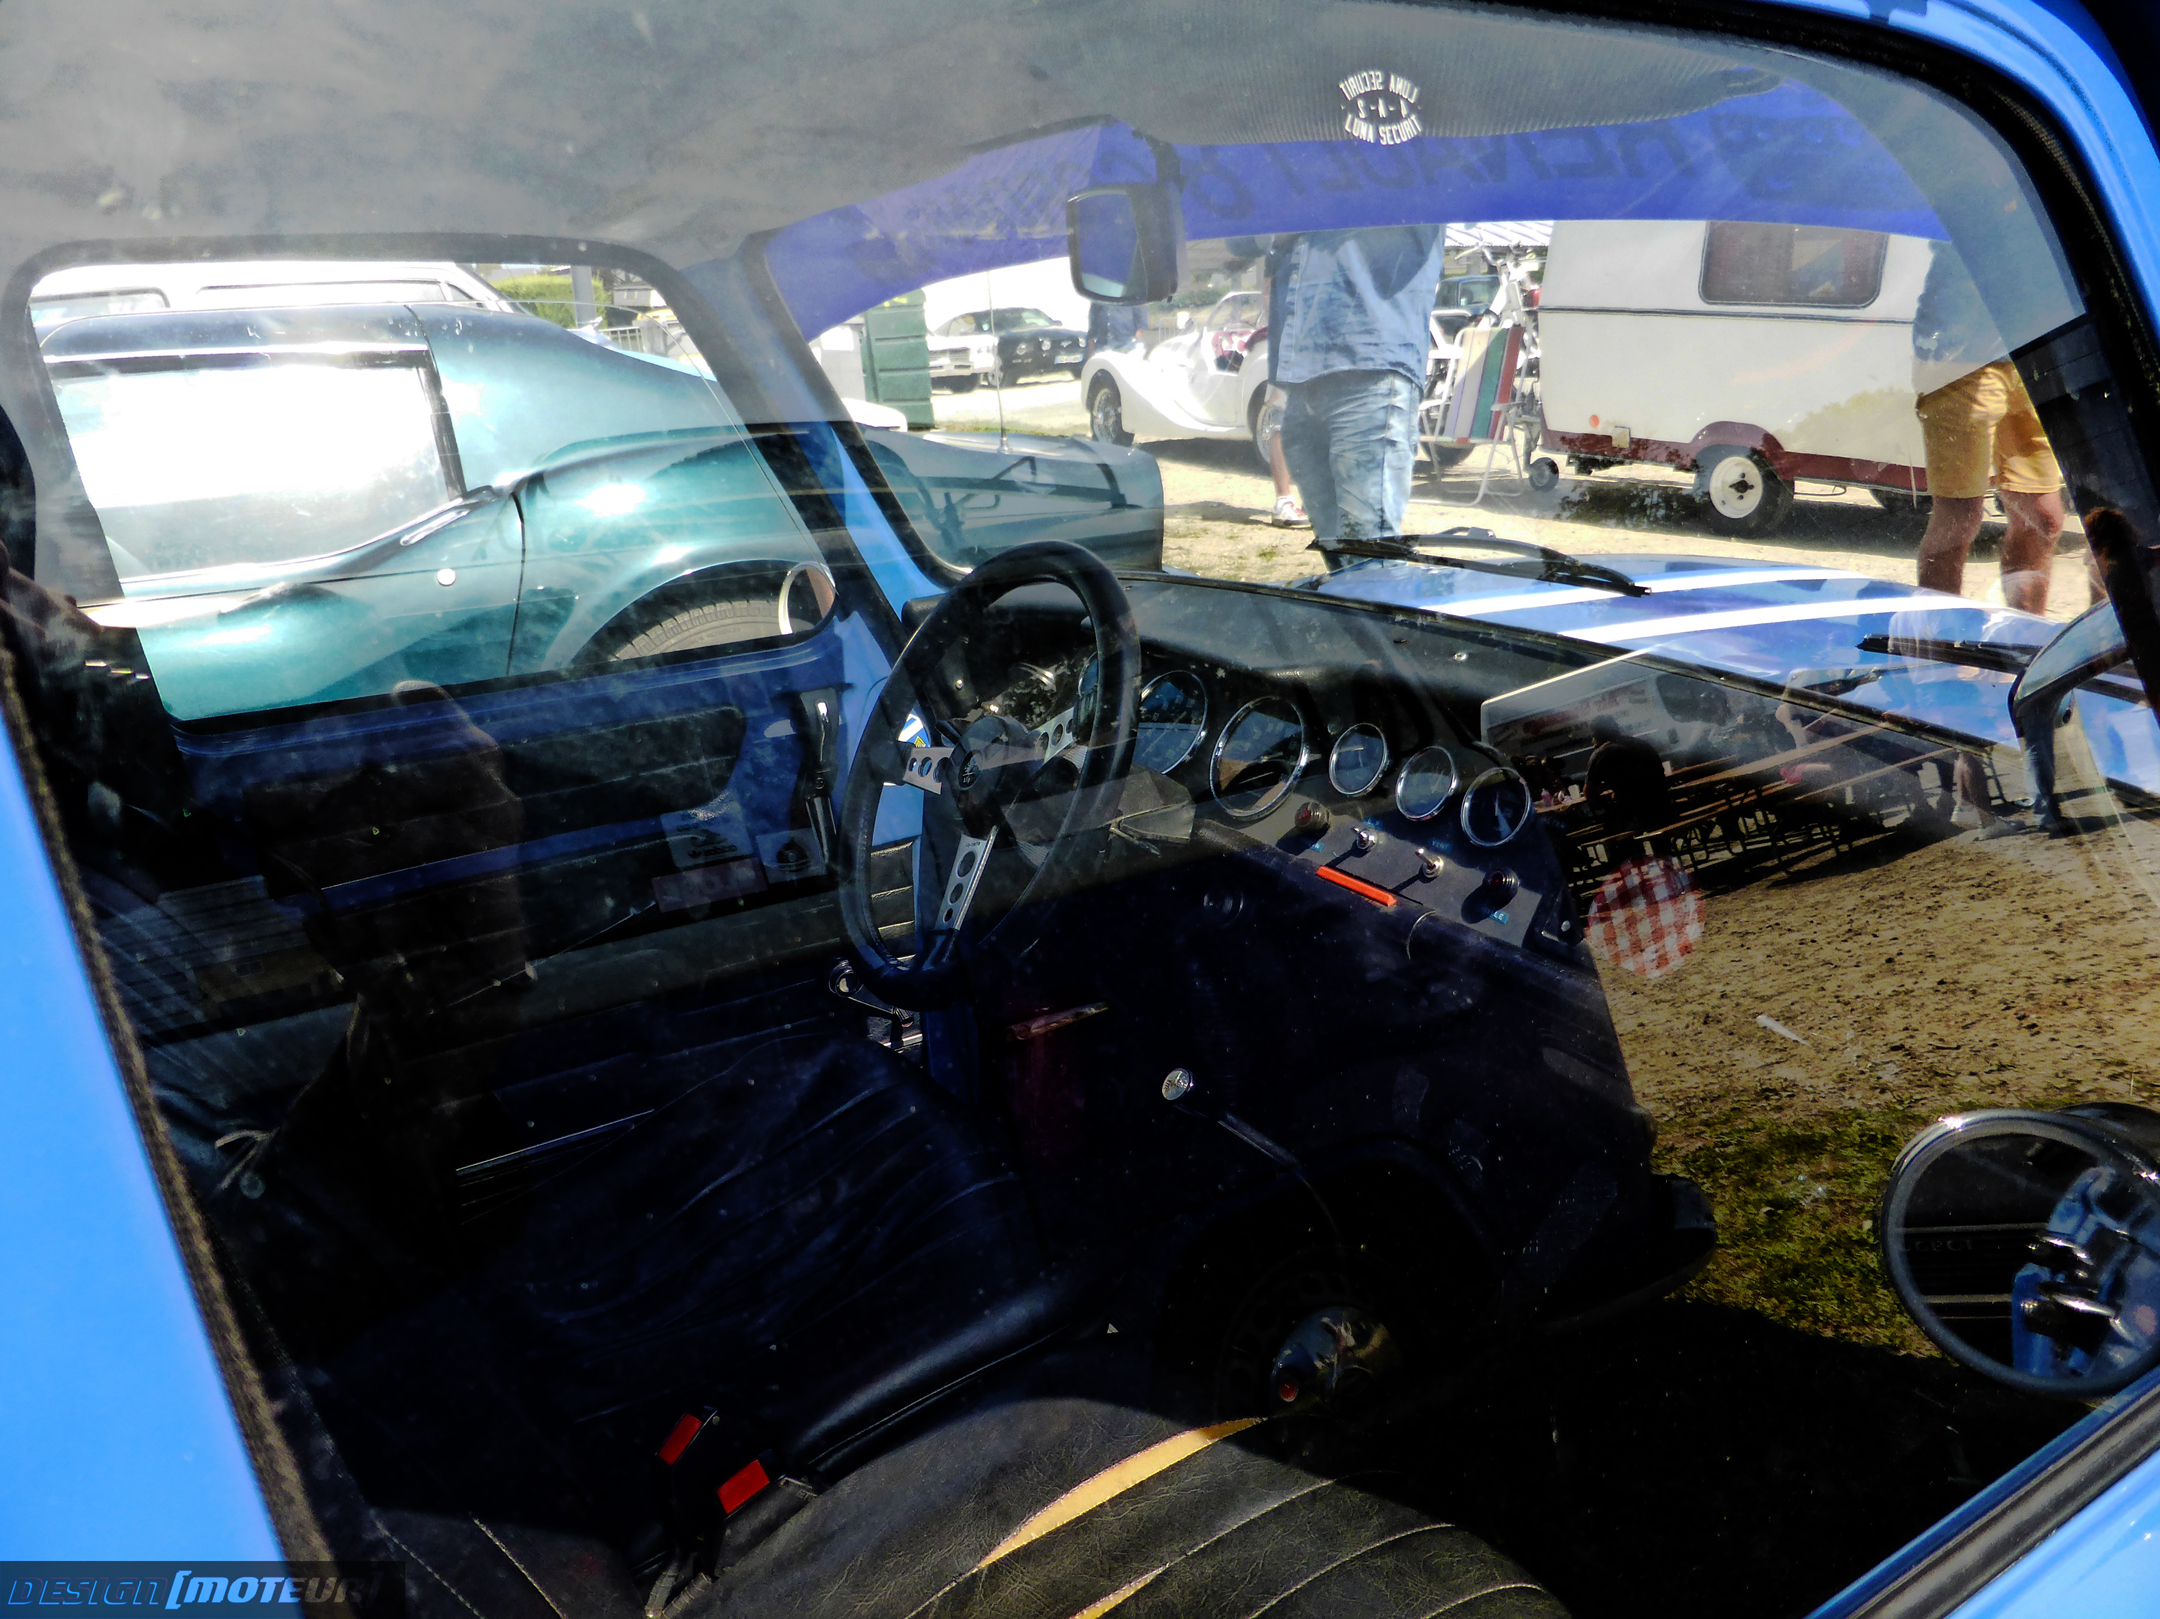 Renault 8 Gordini - interior / intérieur - 2019 - Breizh Pickers - parking expo - photo ELJ DESIGNMOTEUR